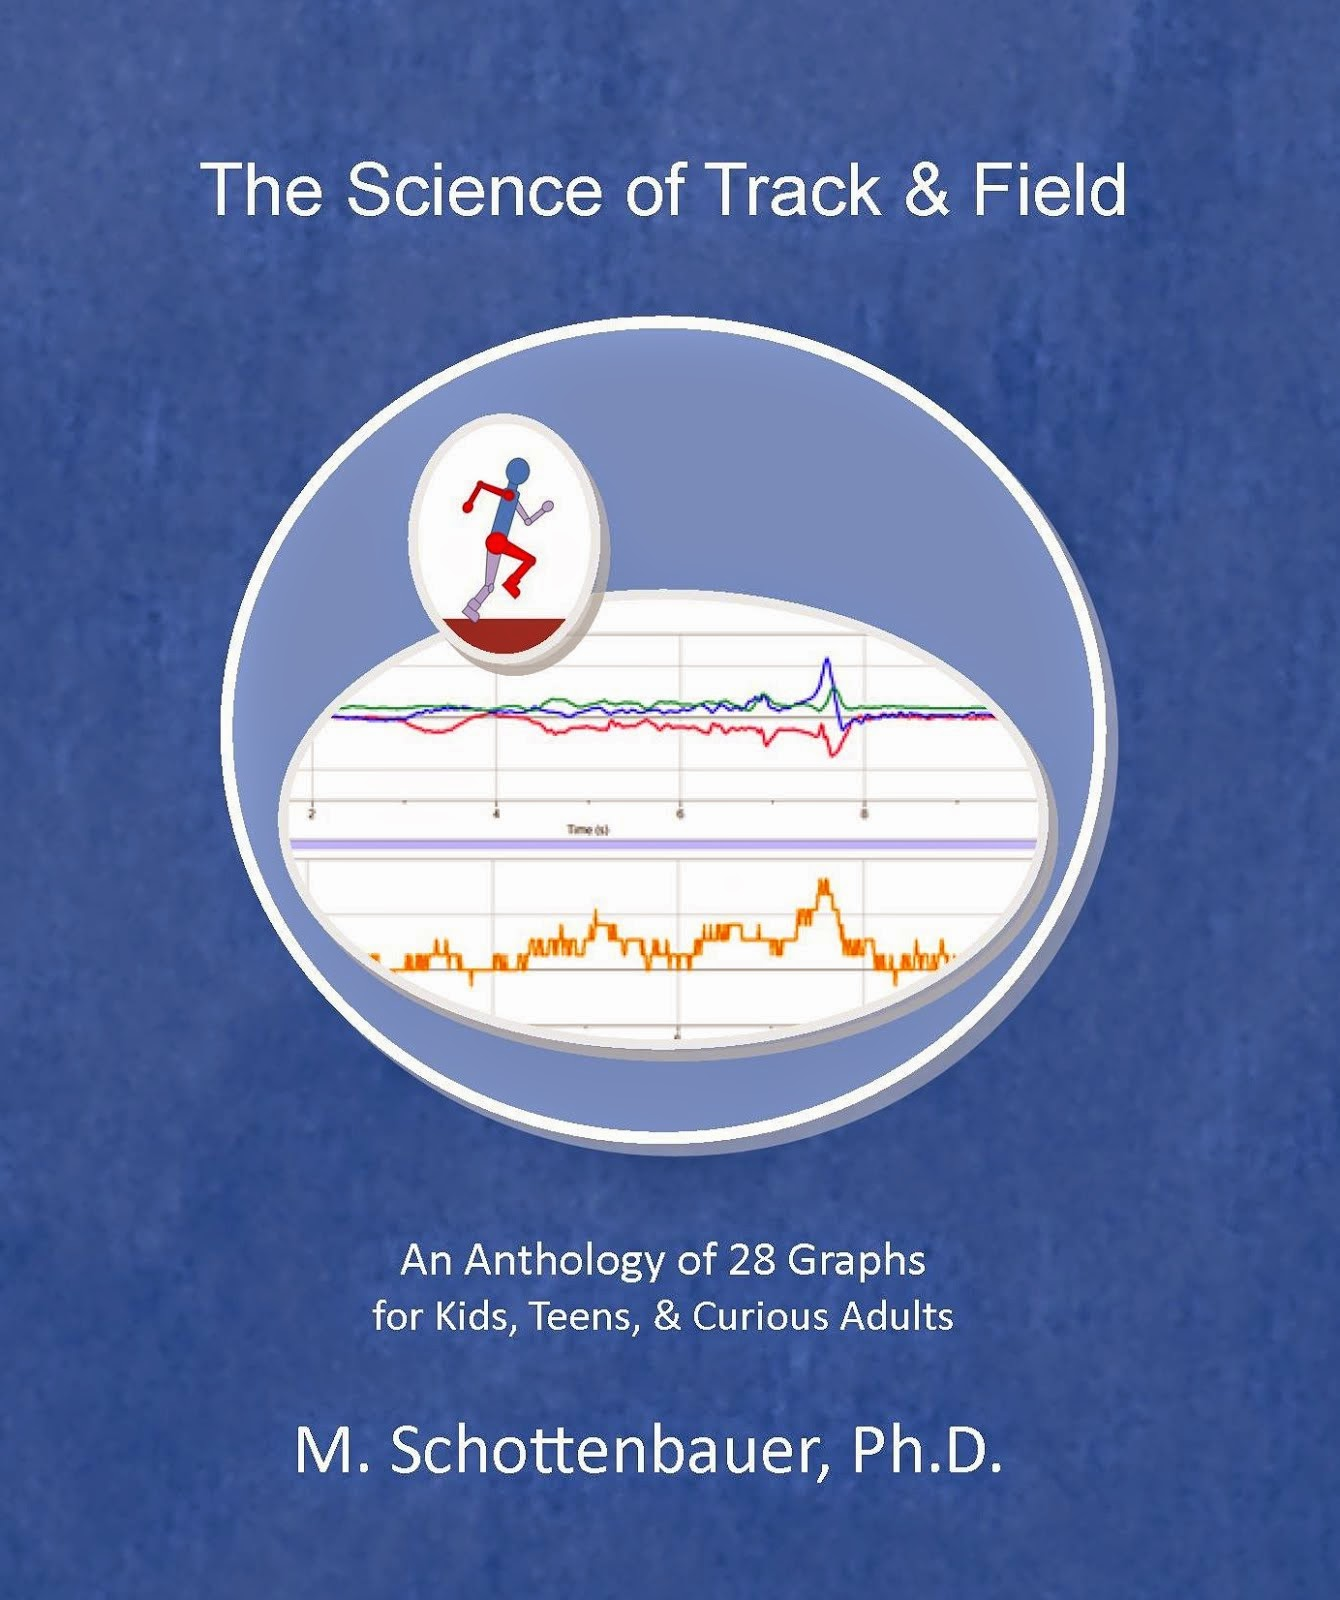 Anthology of Graphs